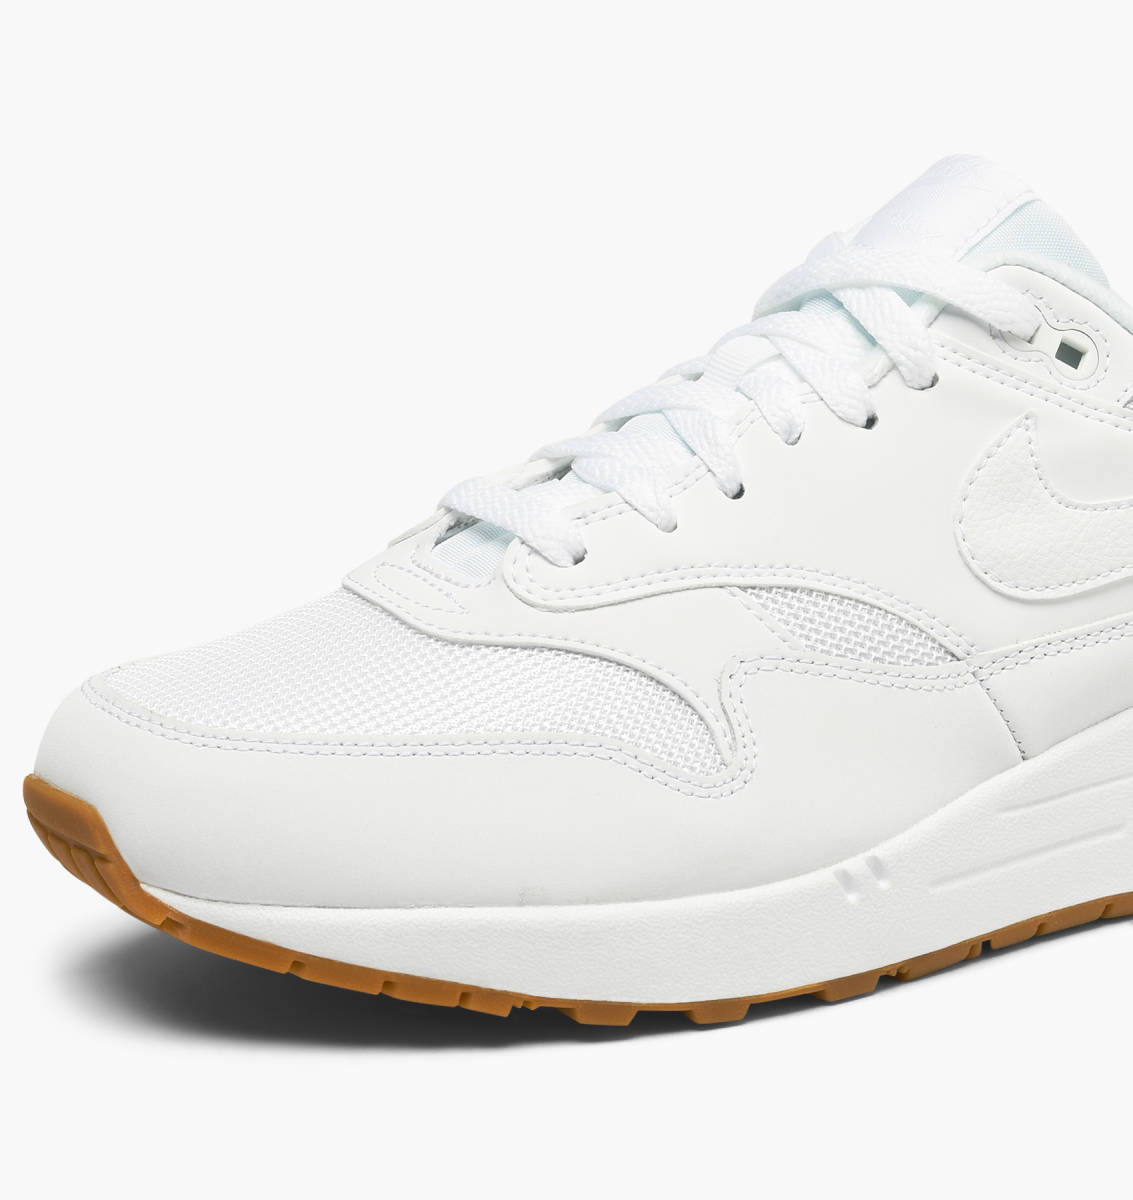 new style 72367 0464d Nike Air Max 1 in weiss - AH8145-109 | everysize